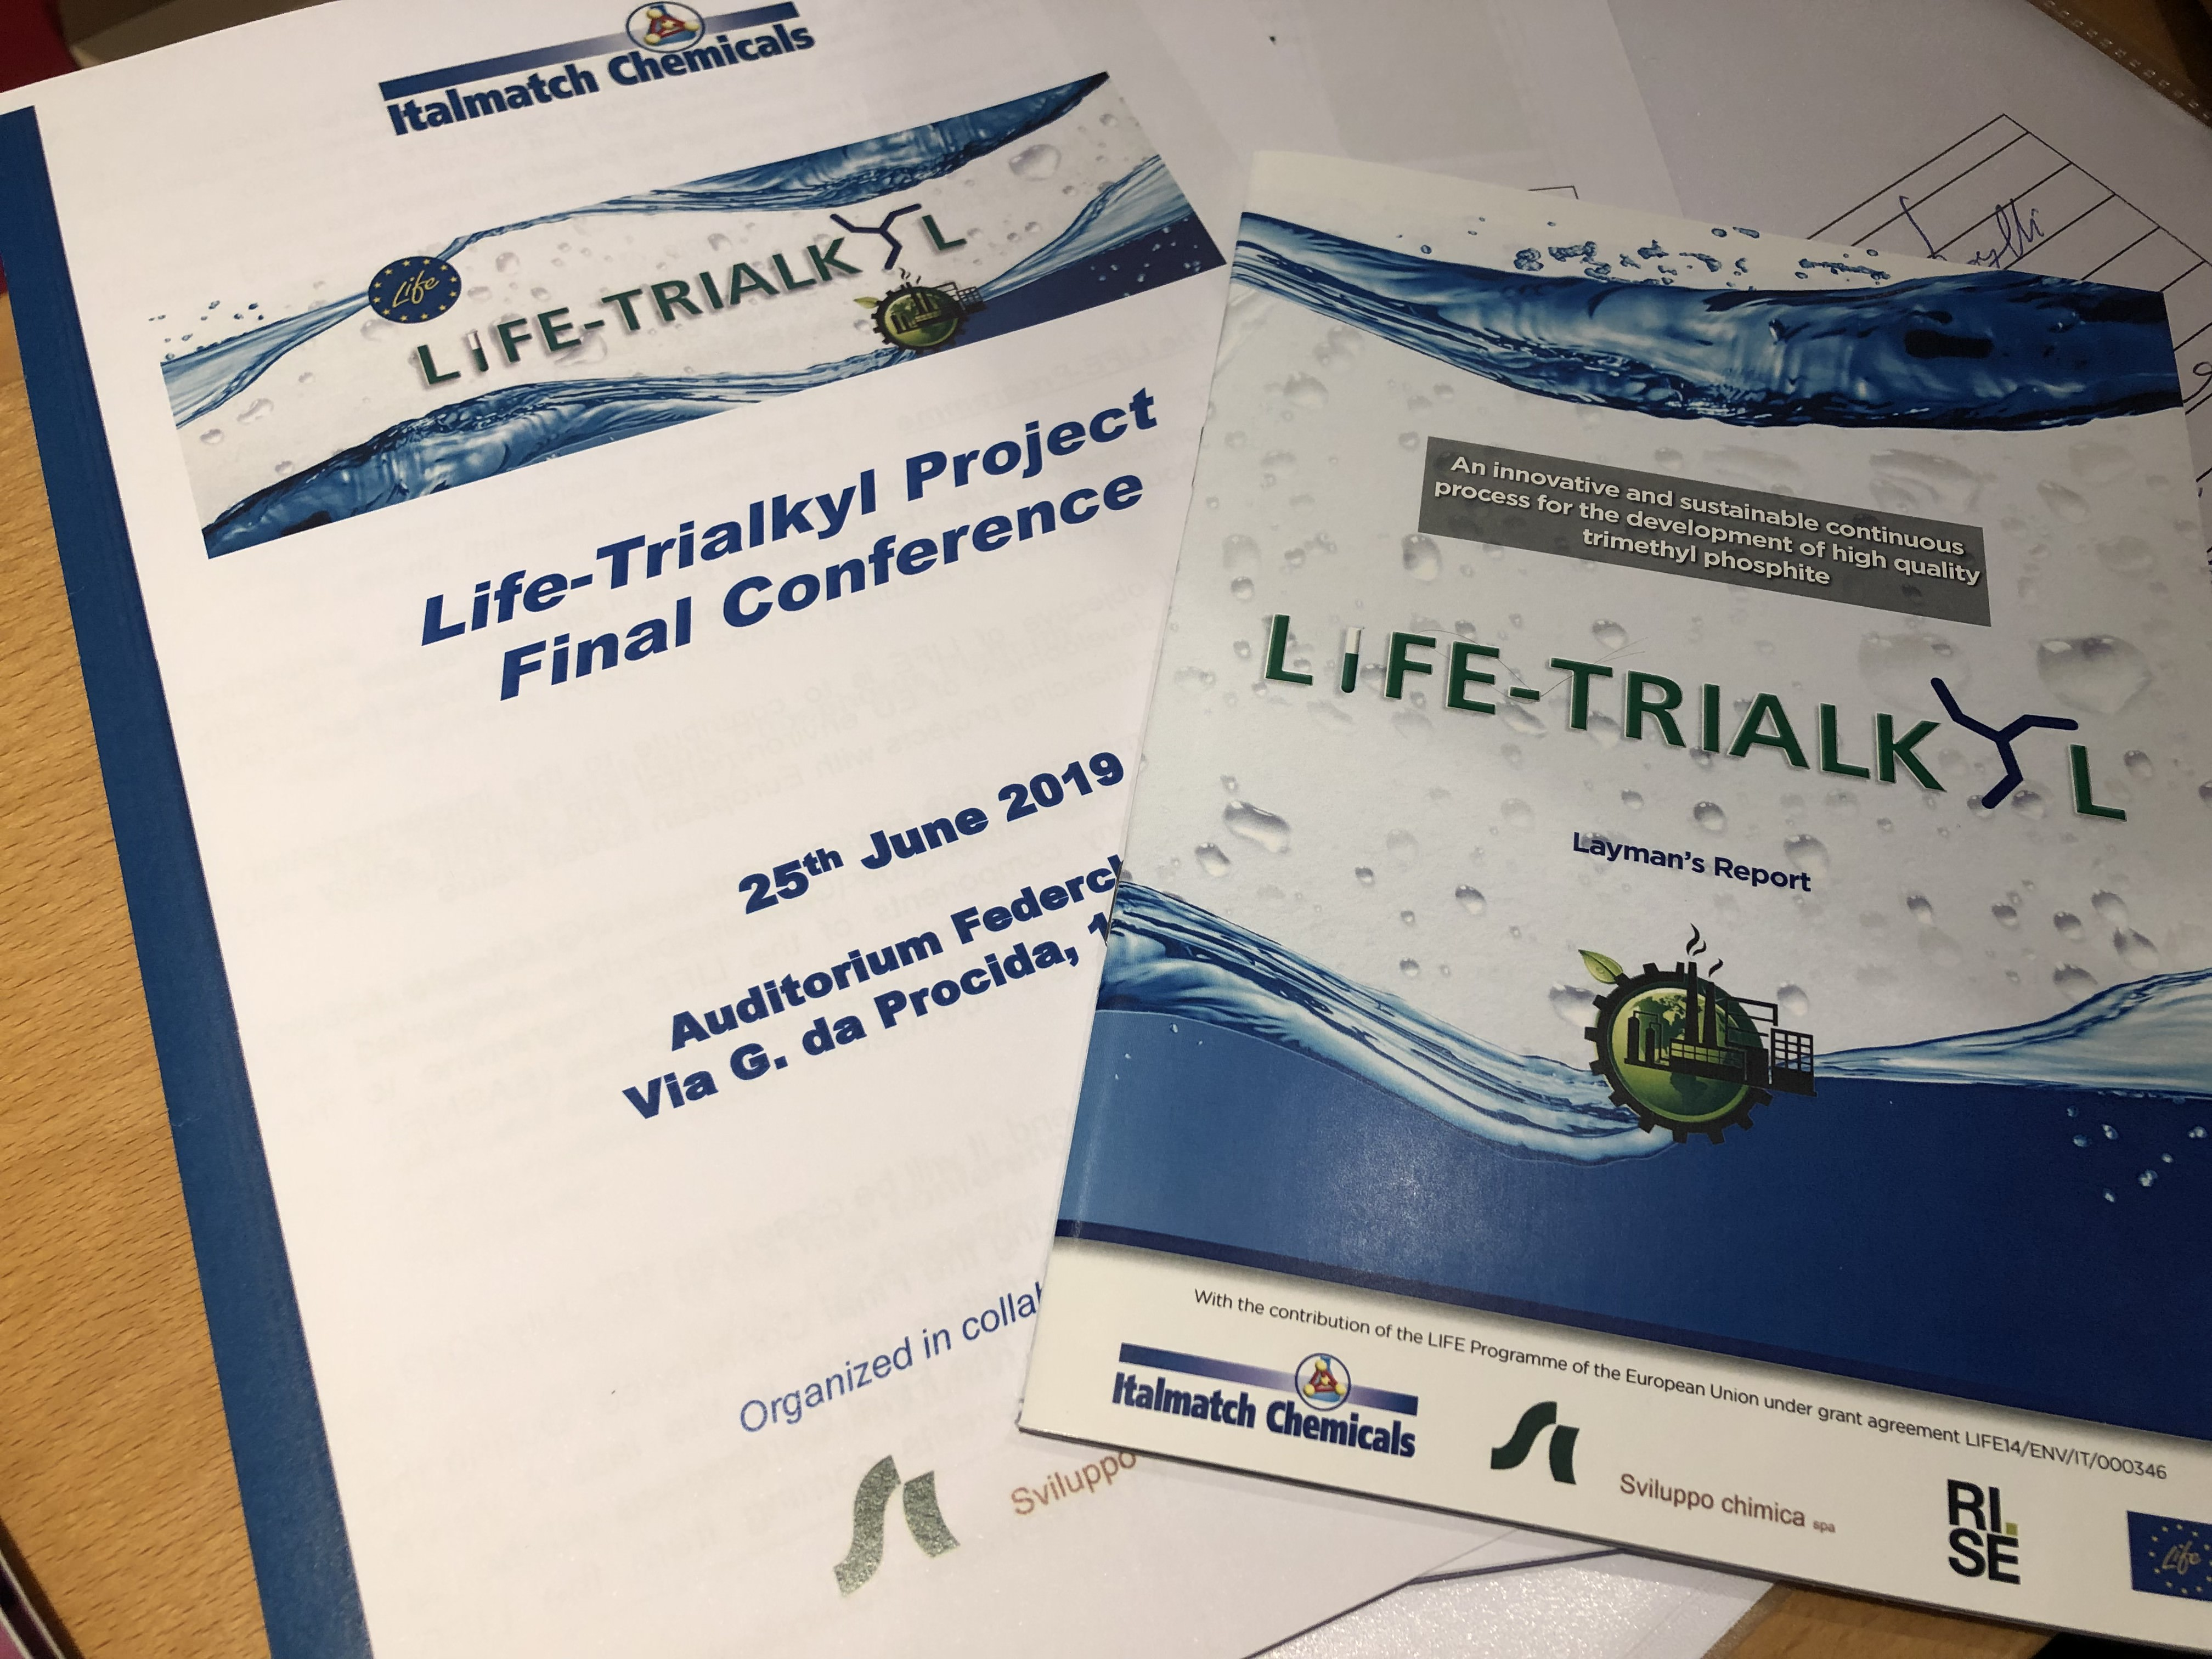 LIFE-Trialkyl Final Conference (14)